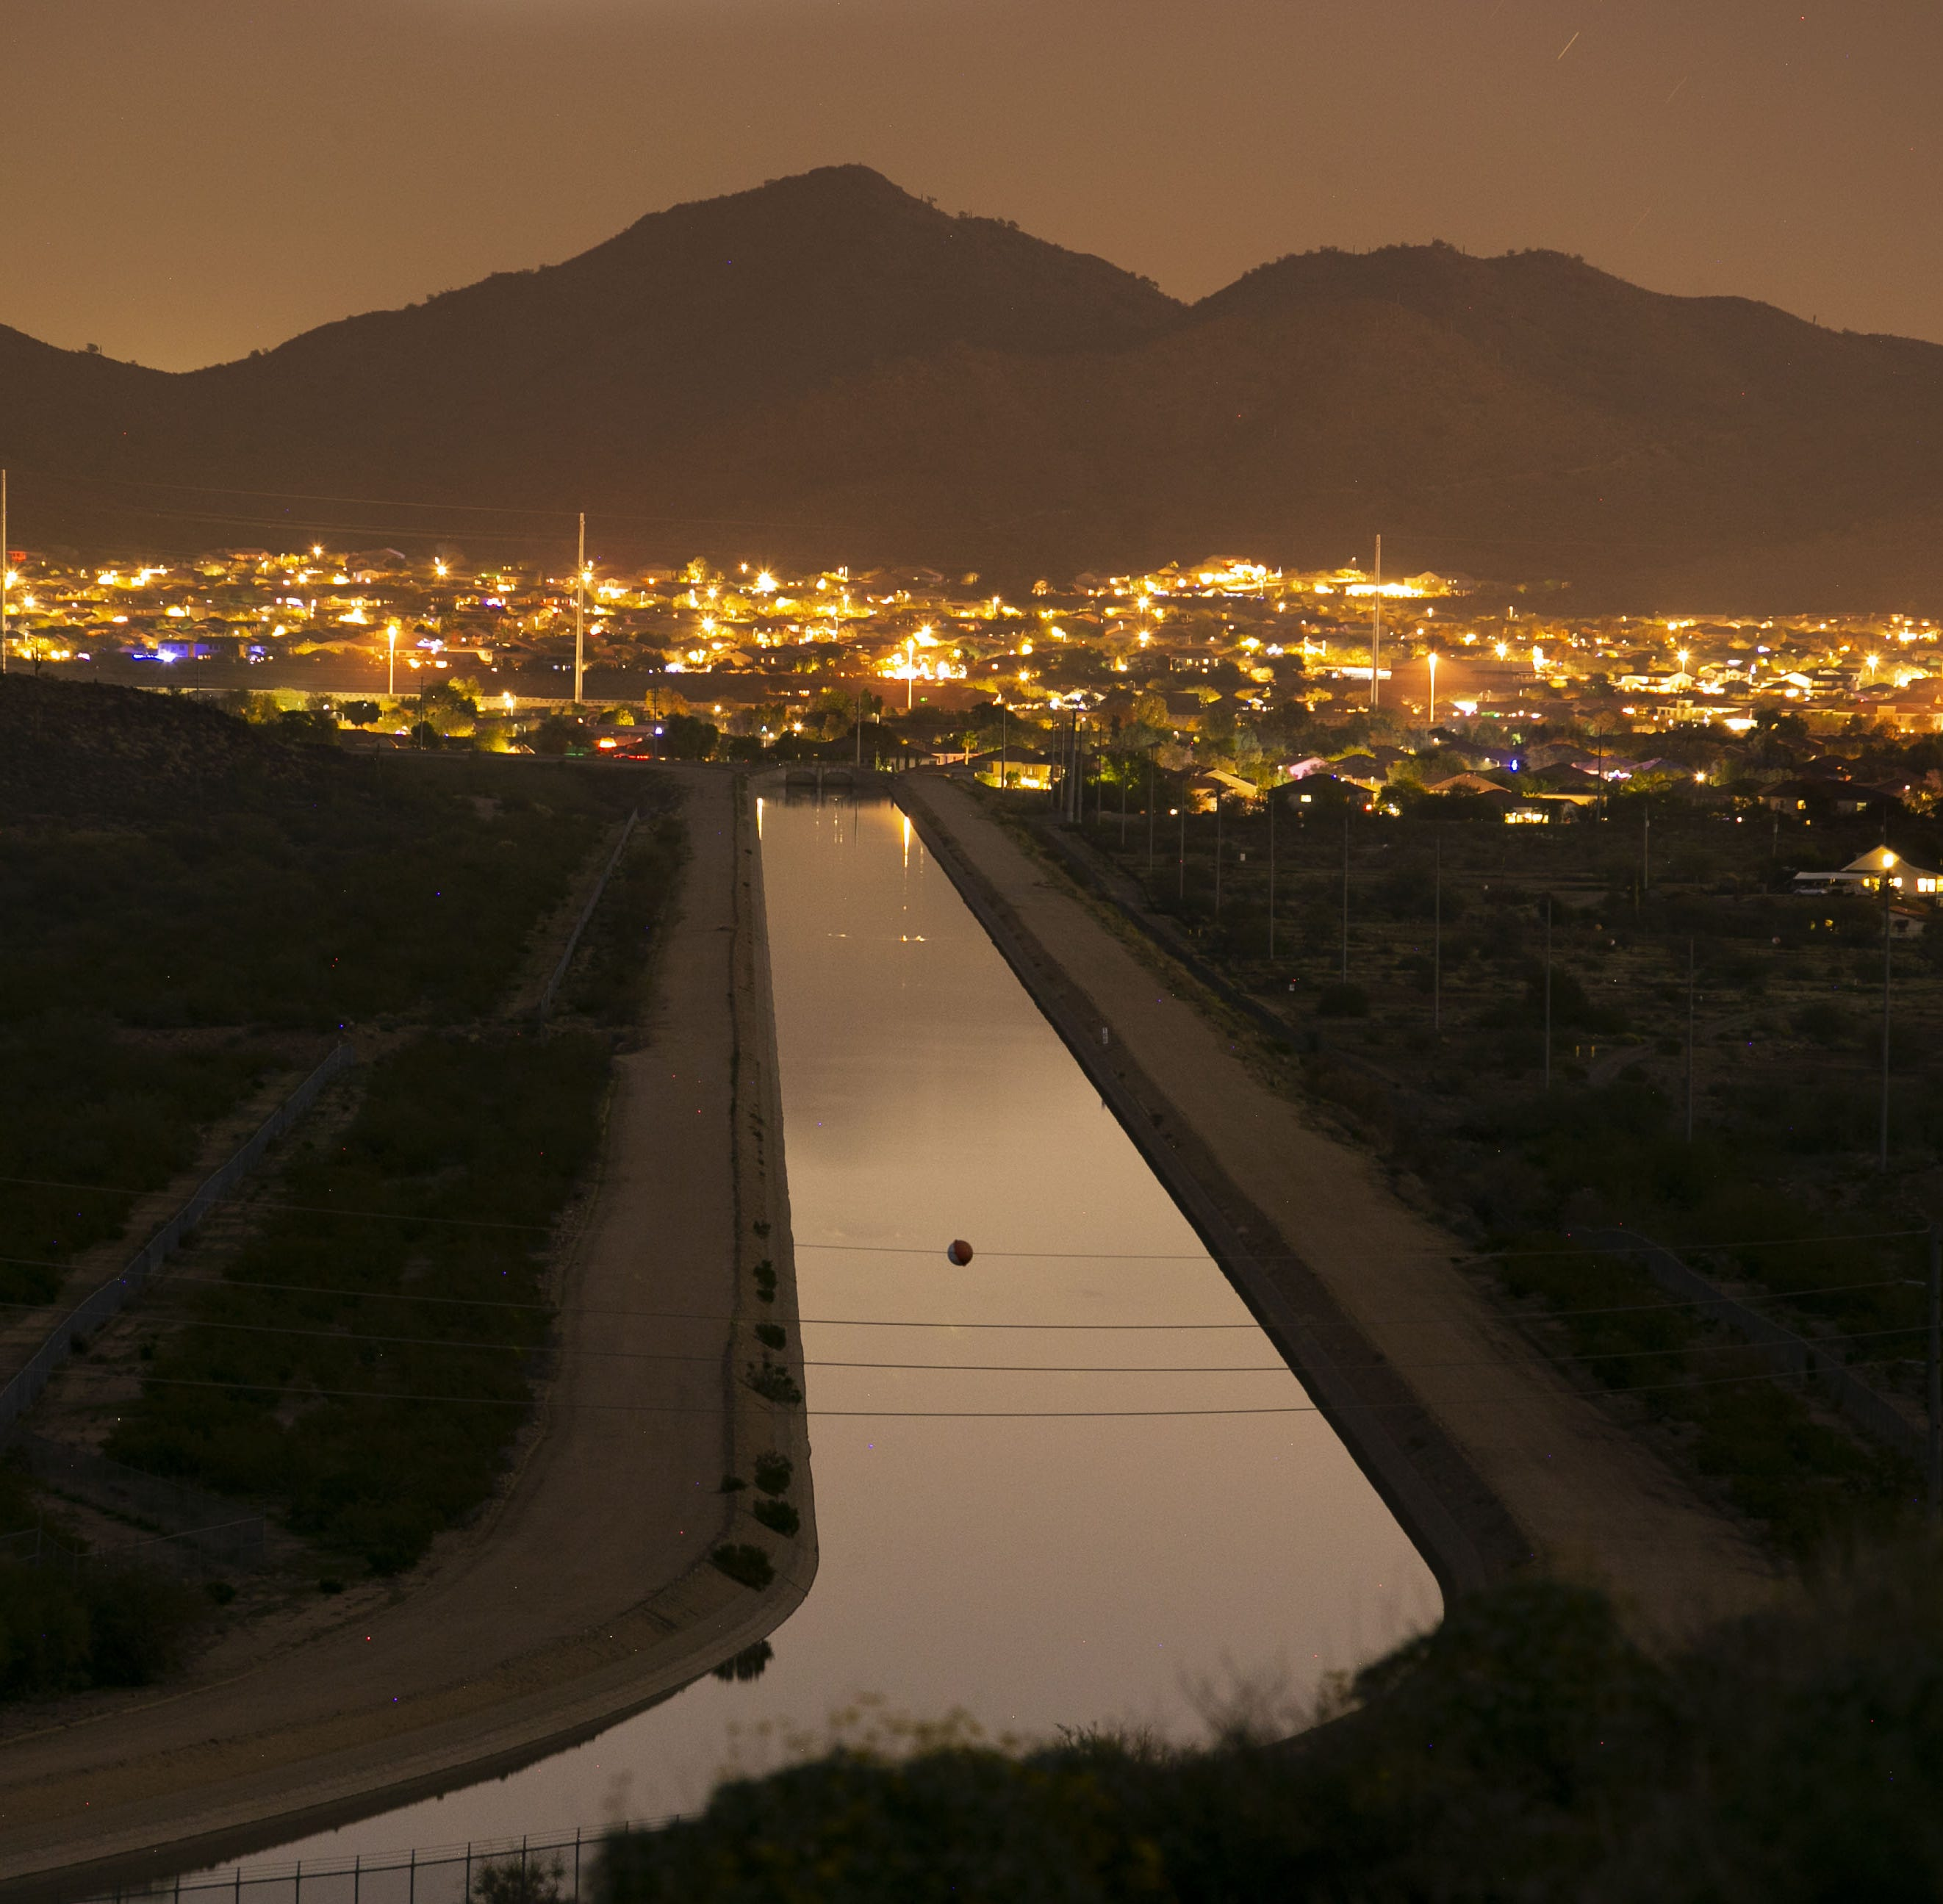 Does Arizona really use less water now than it did in 1957?